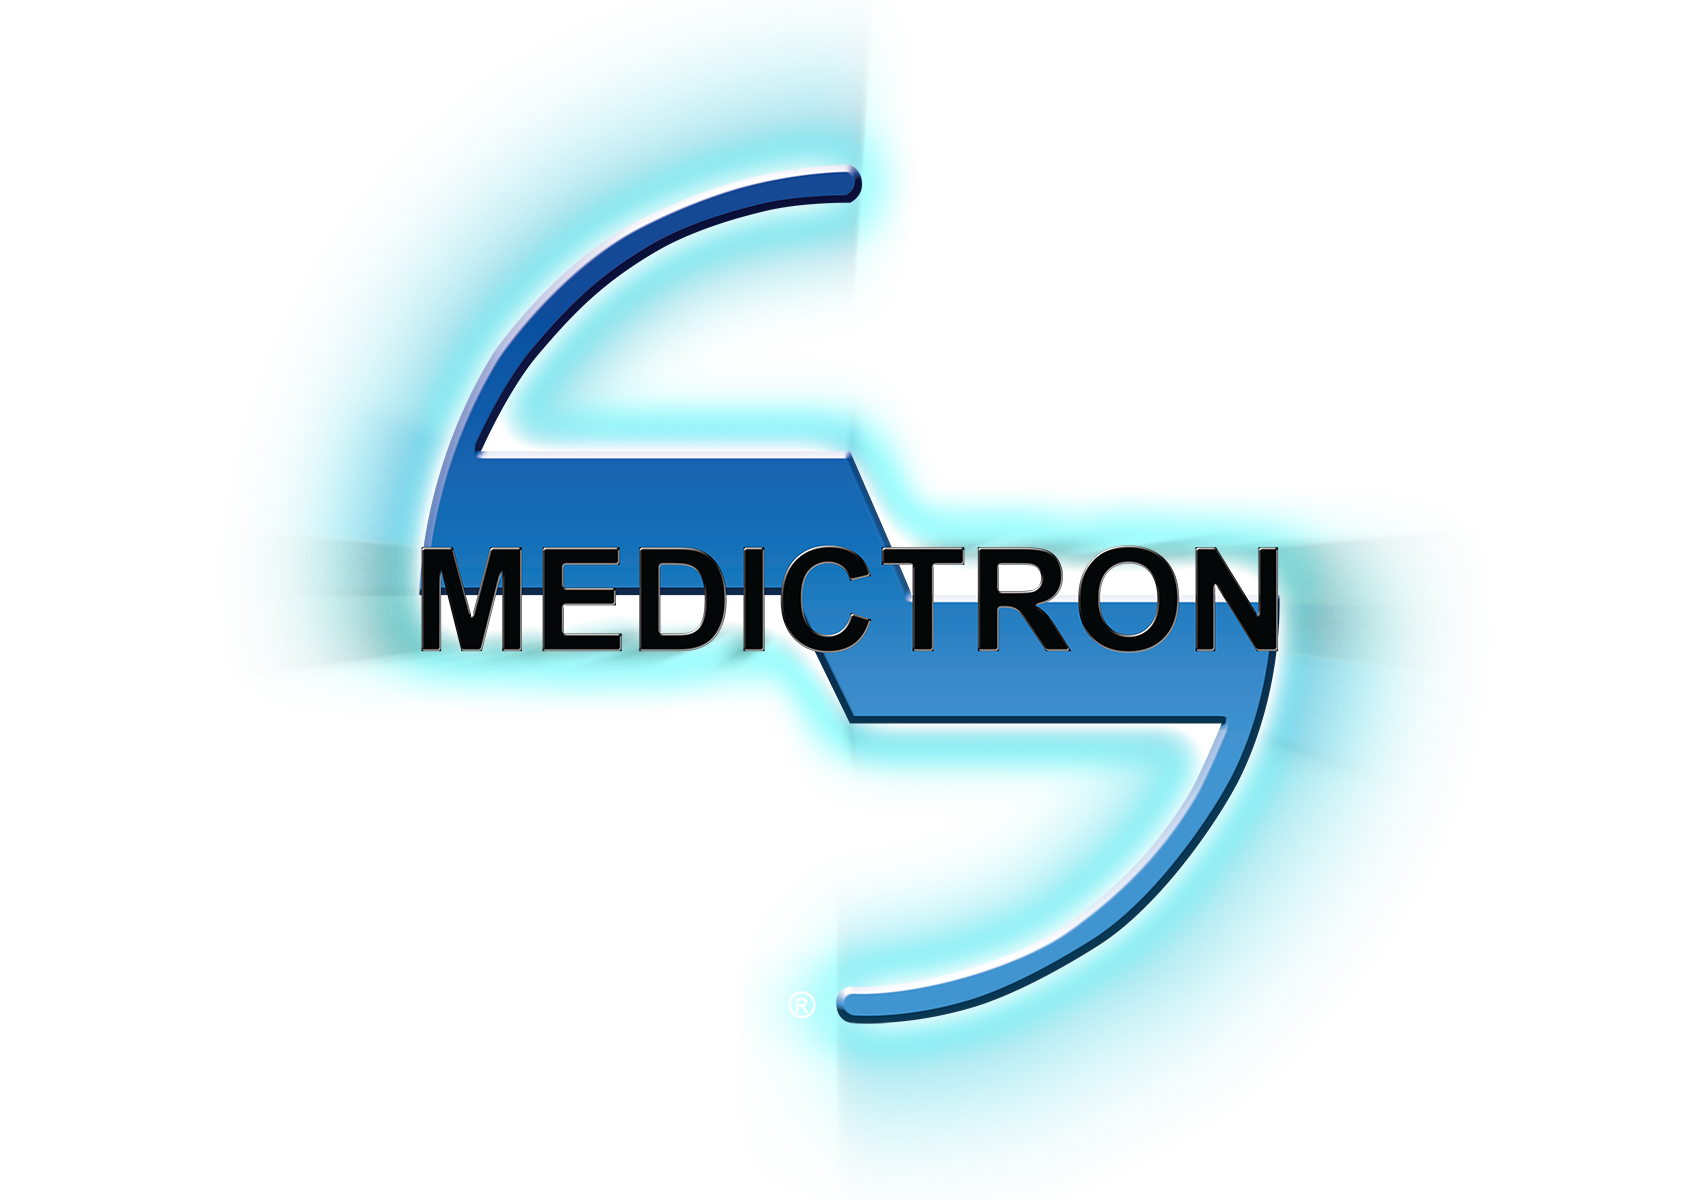 medictron